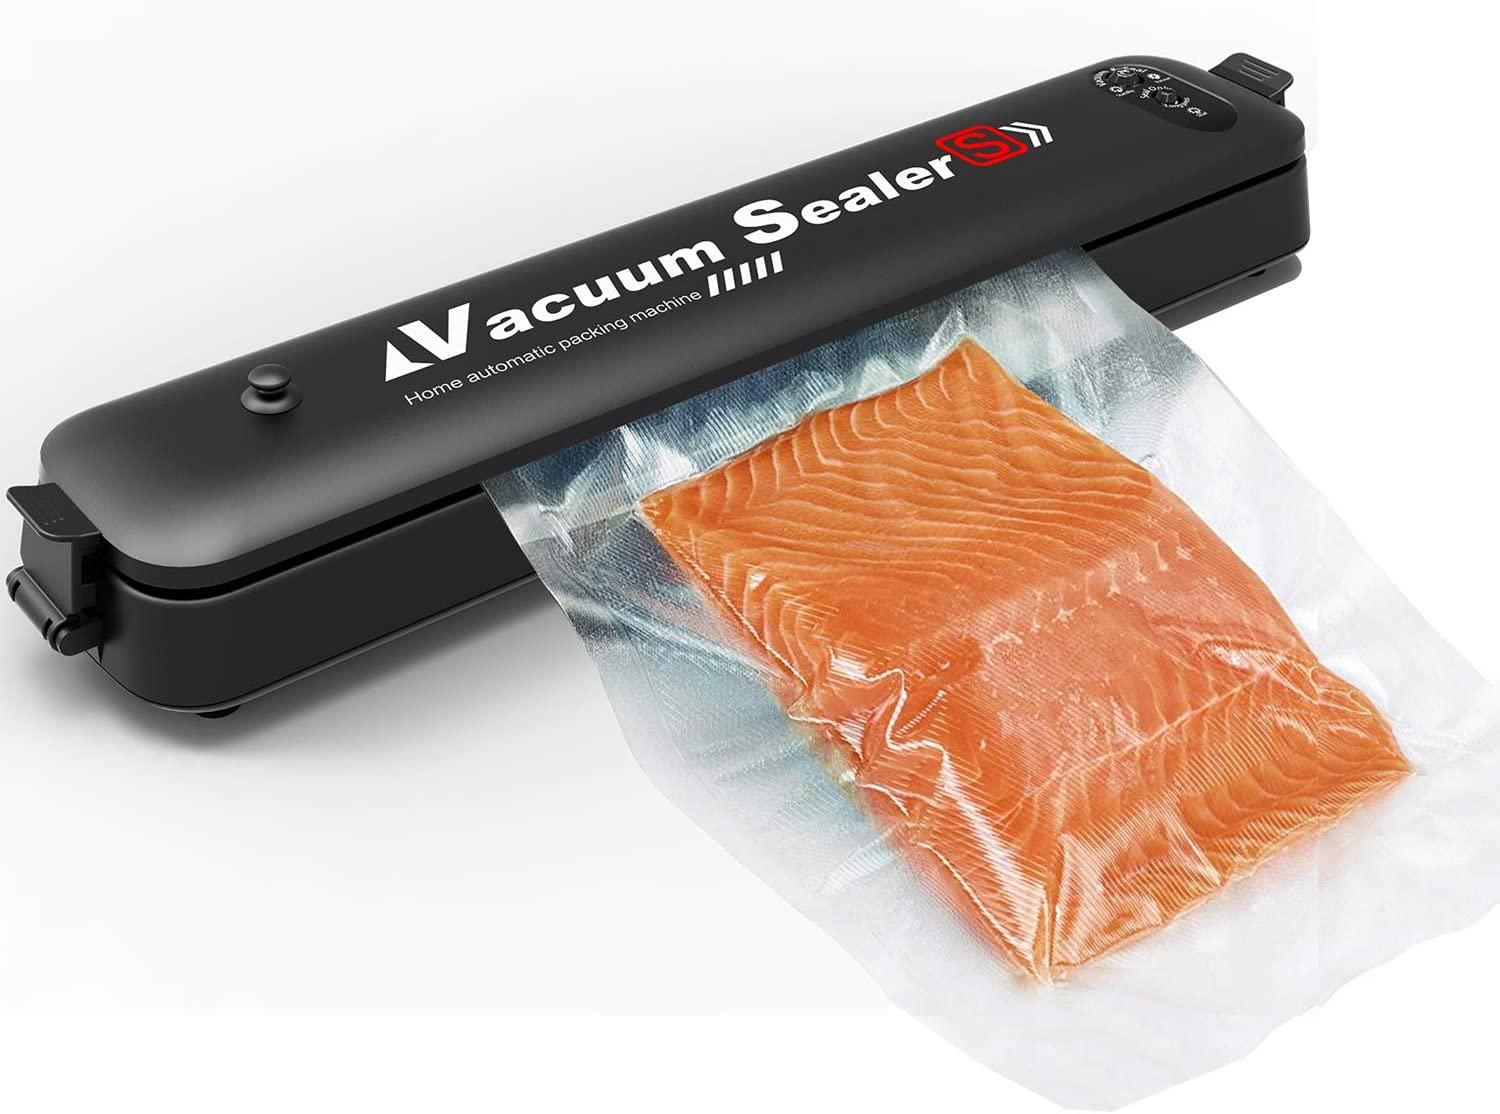 Vacuum Sealer Machine Automatic Vacuum Sealing System for Food Preservation Food Sealer for Food Savers Starter Kit/Easy to Clean/Led Indicator Lights/Compact Design/Dry&Moist Food Model(&15pcs Bags)